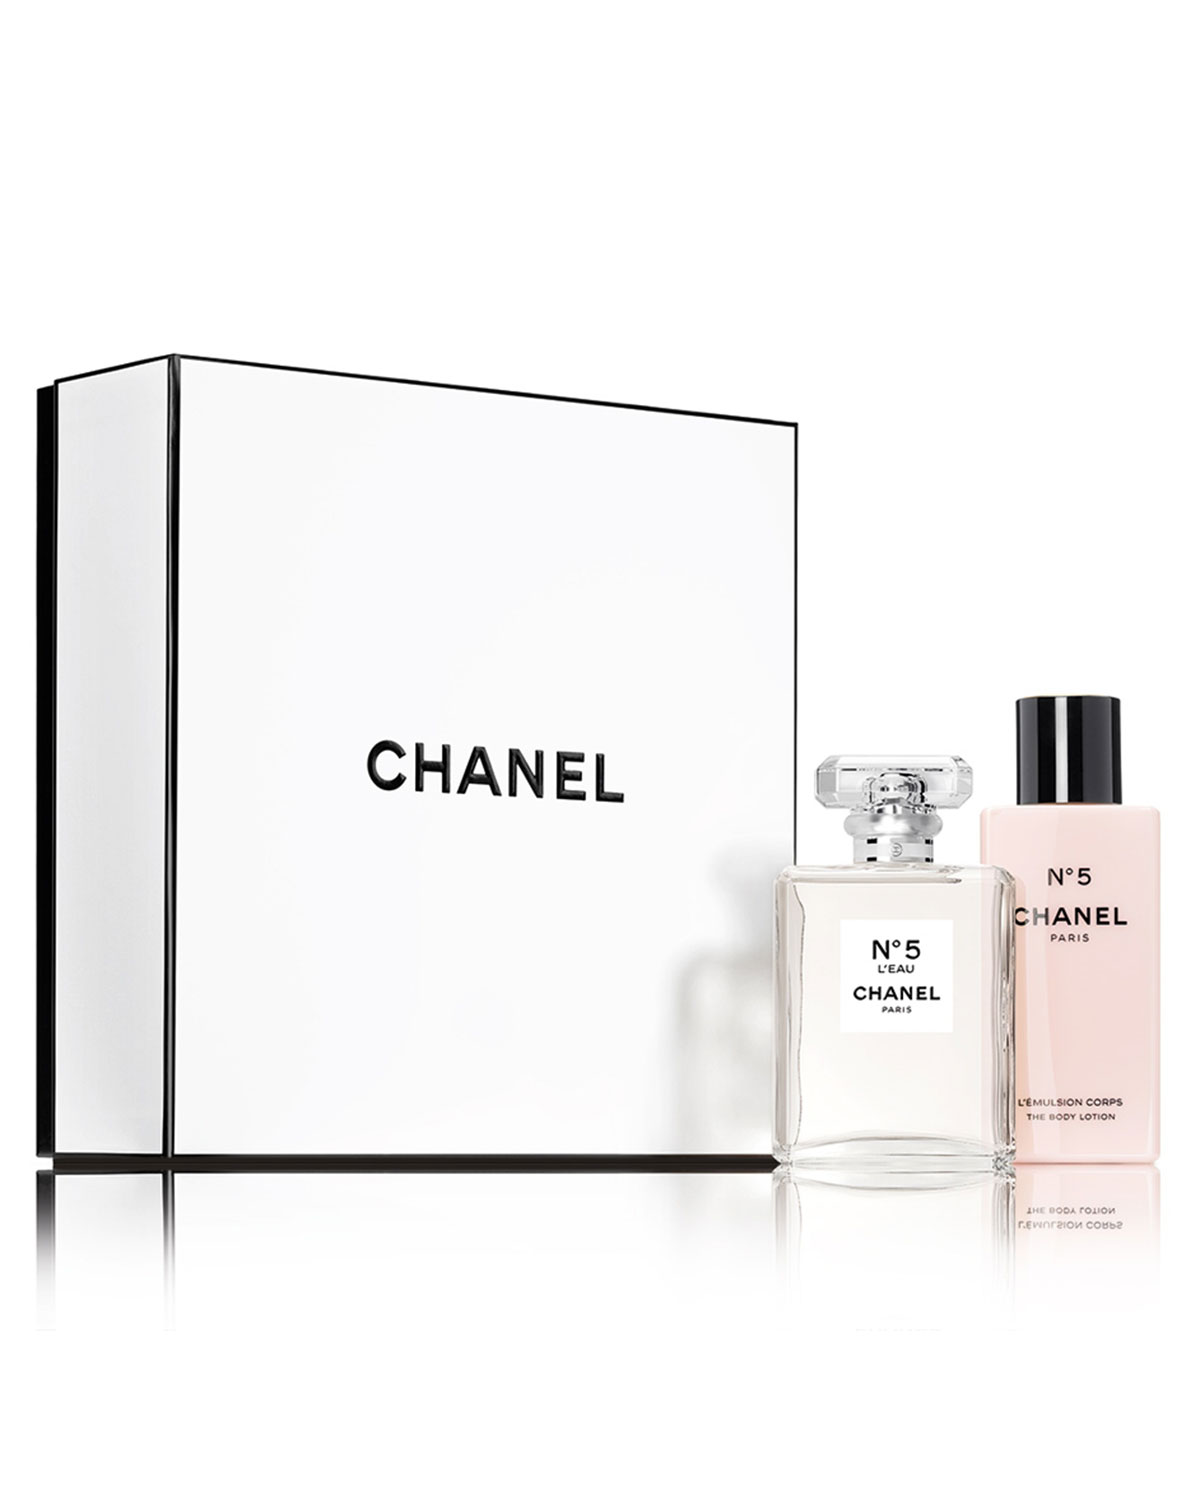 CHANEL <b>Limited Edition N°5 L'EAU Set</b>